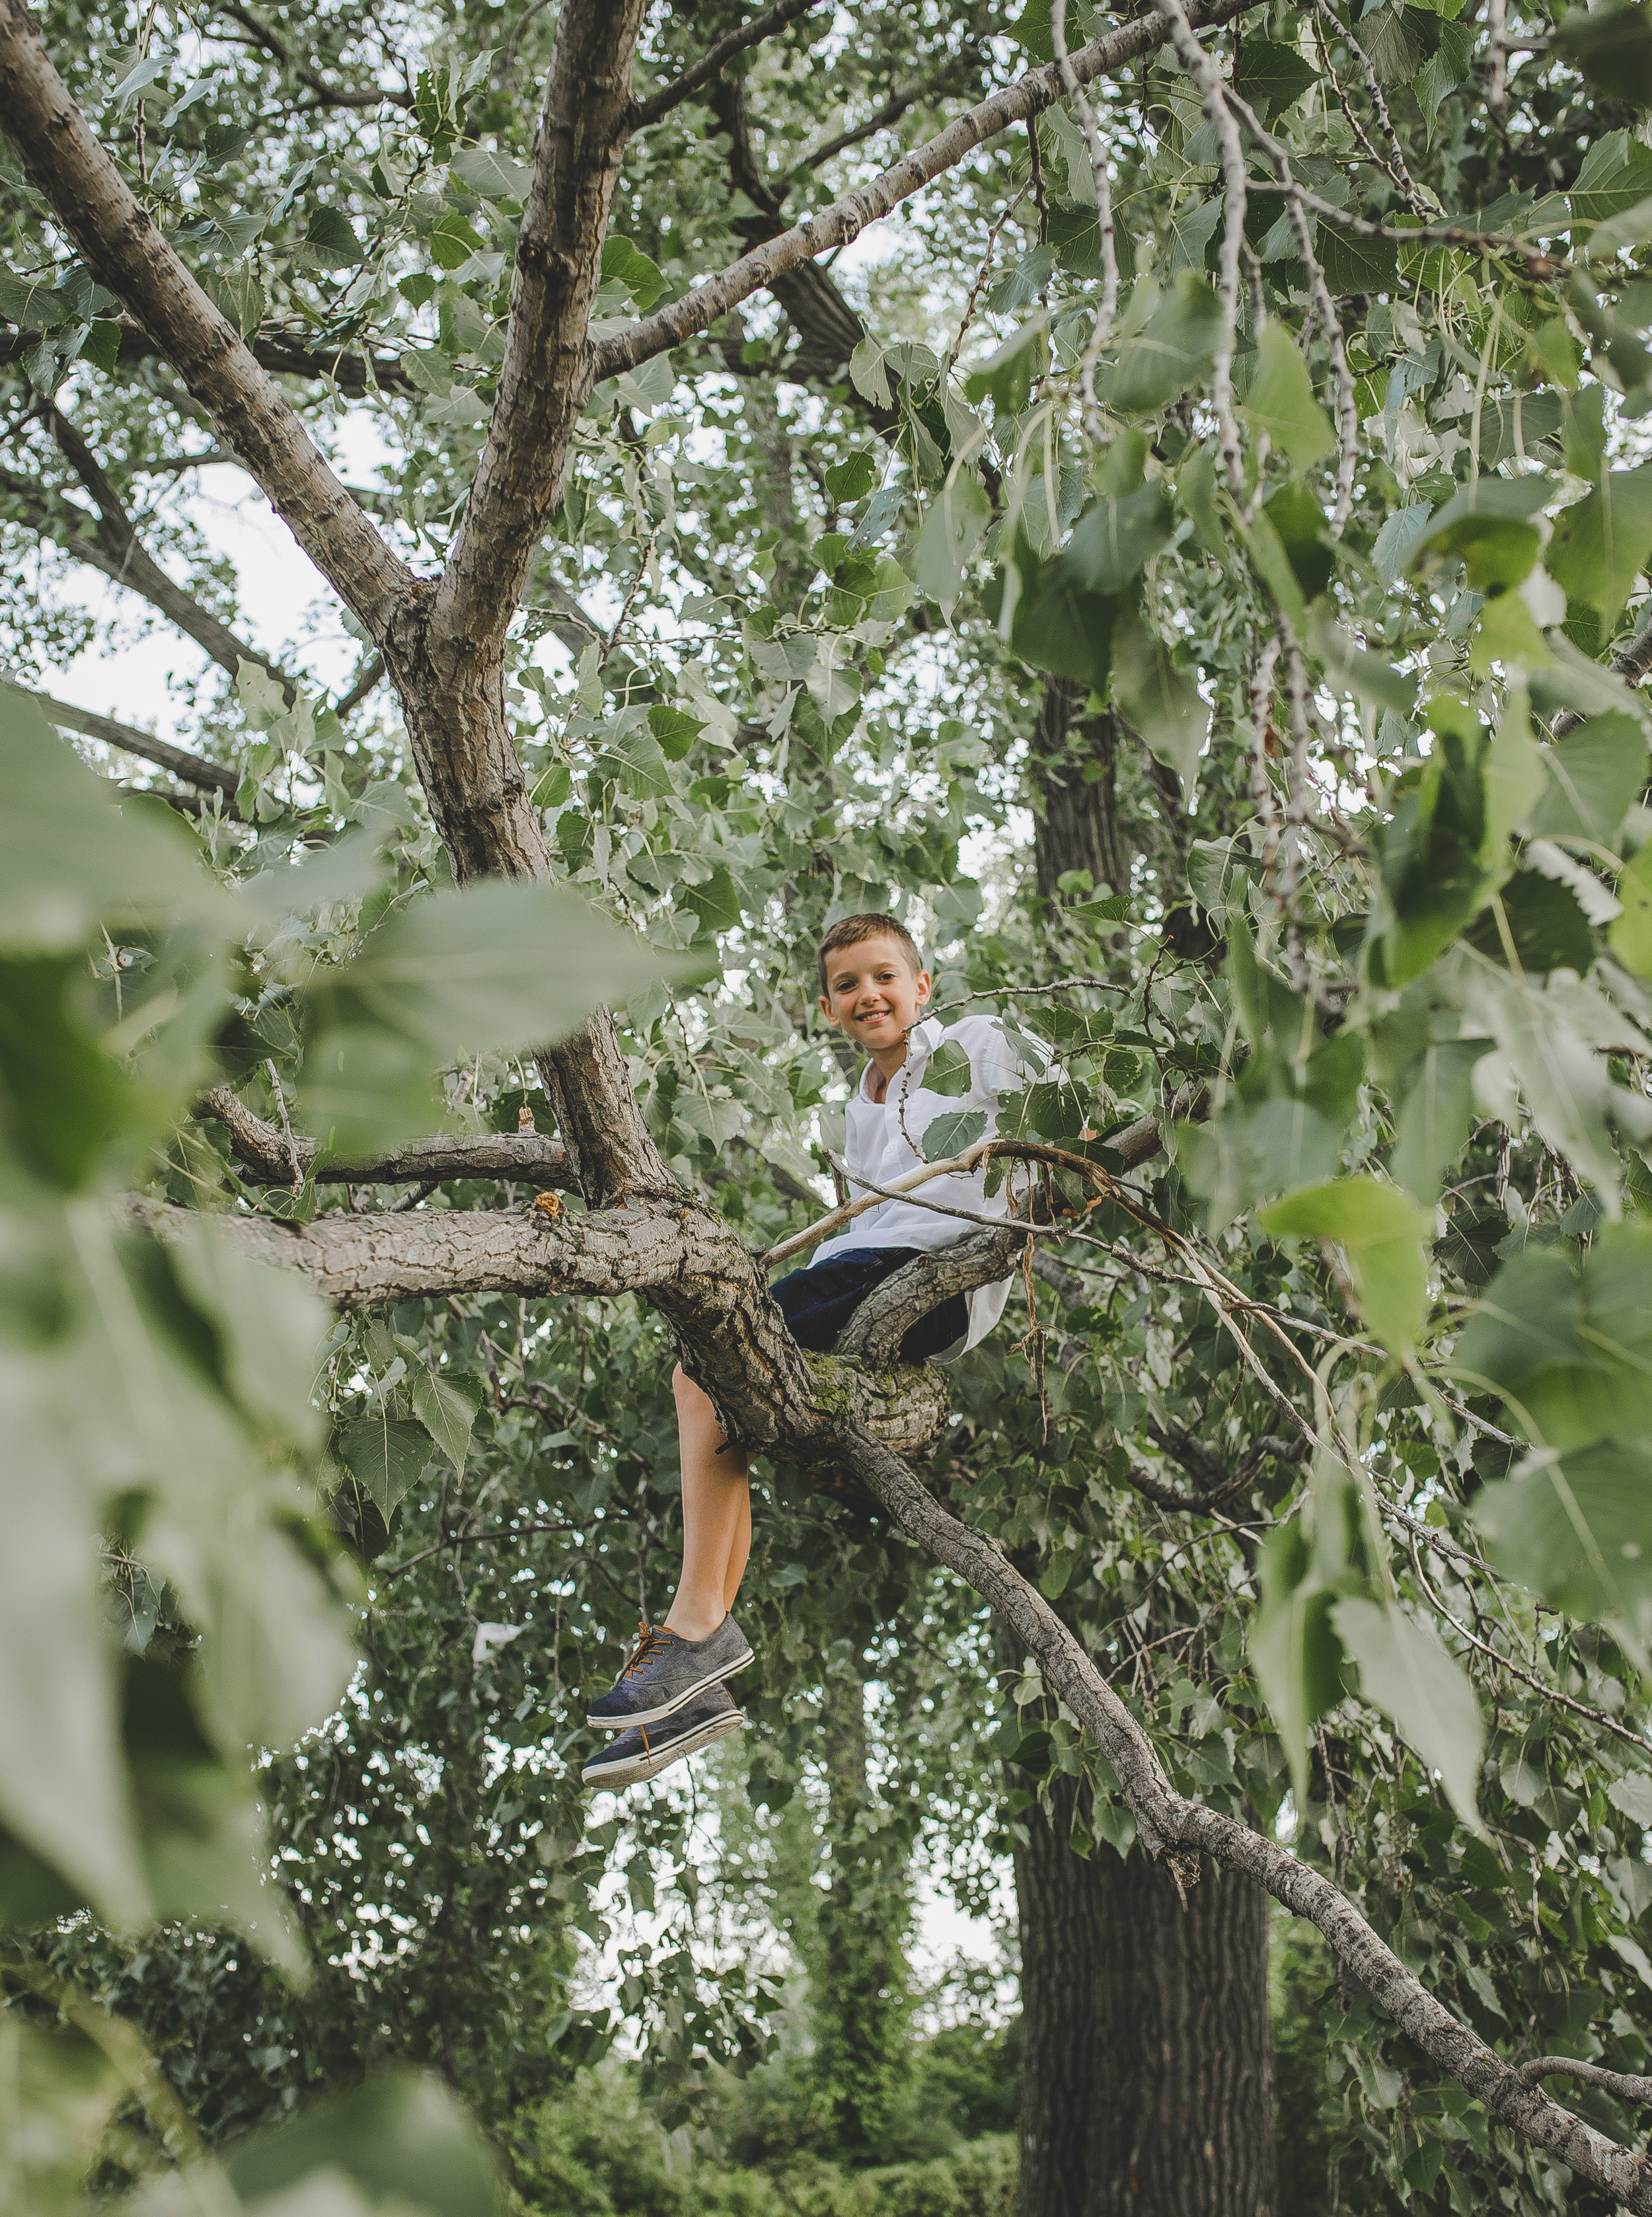 Having boys is NOT for the faint of heart! Noah decided that he wanted to get a bit adventurous and climbed up this tree! Makes for a cool shot if I may say so myself! Let's hope Mama didn't have a heart attack!